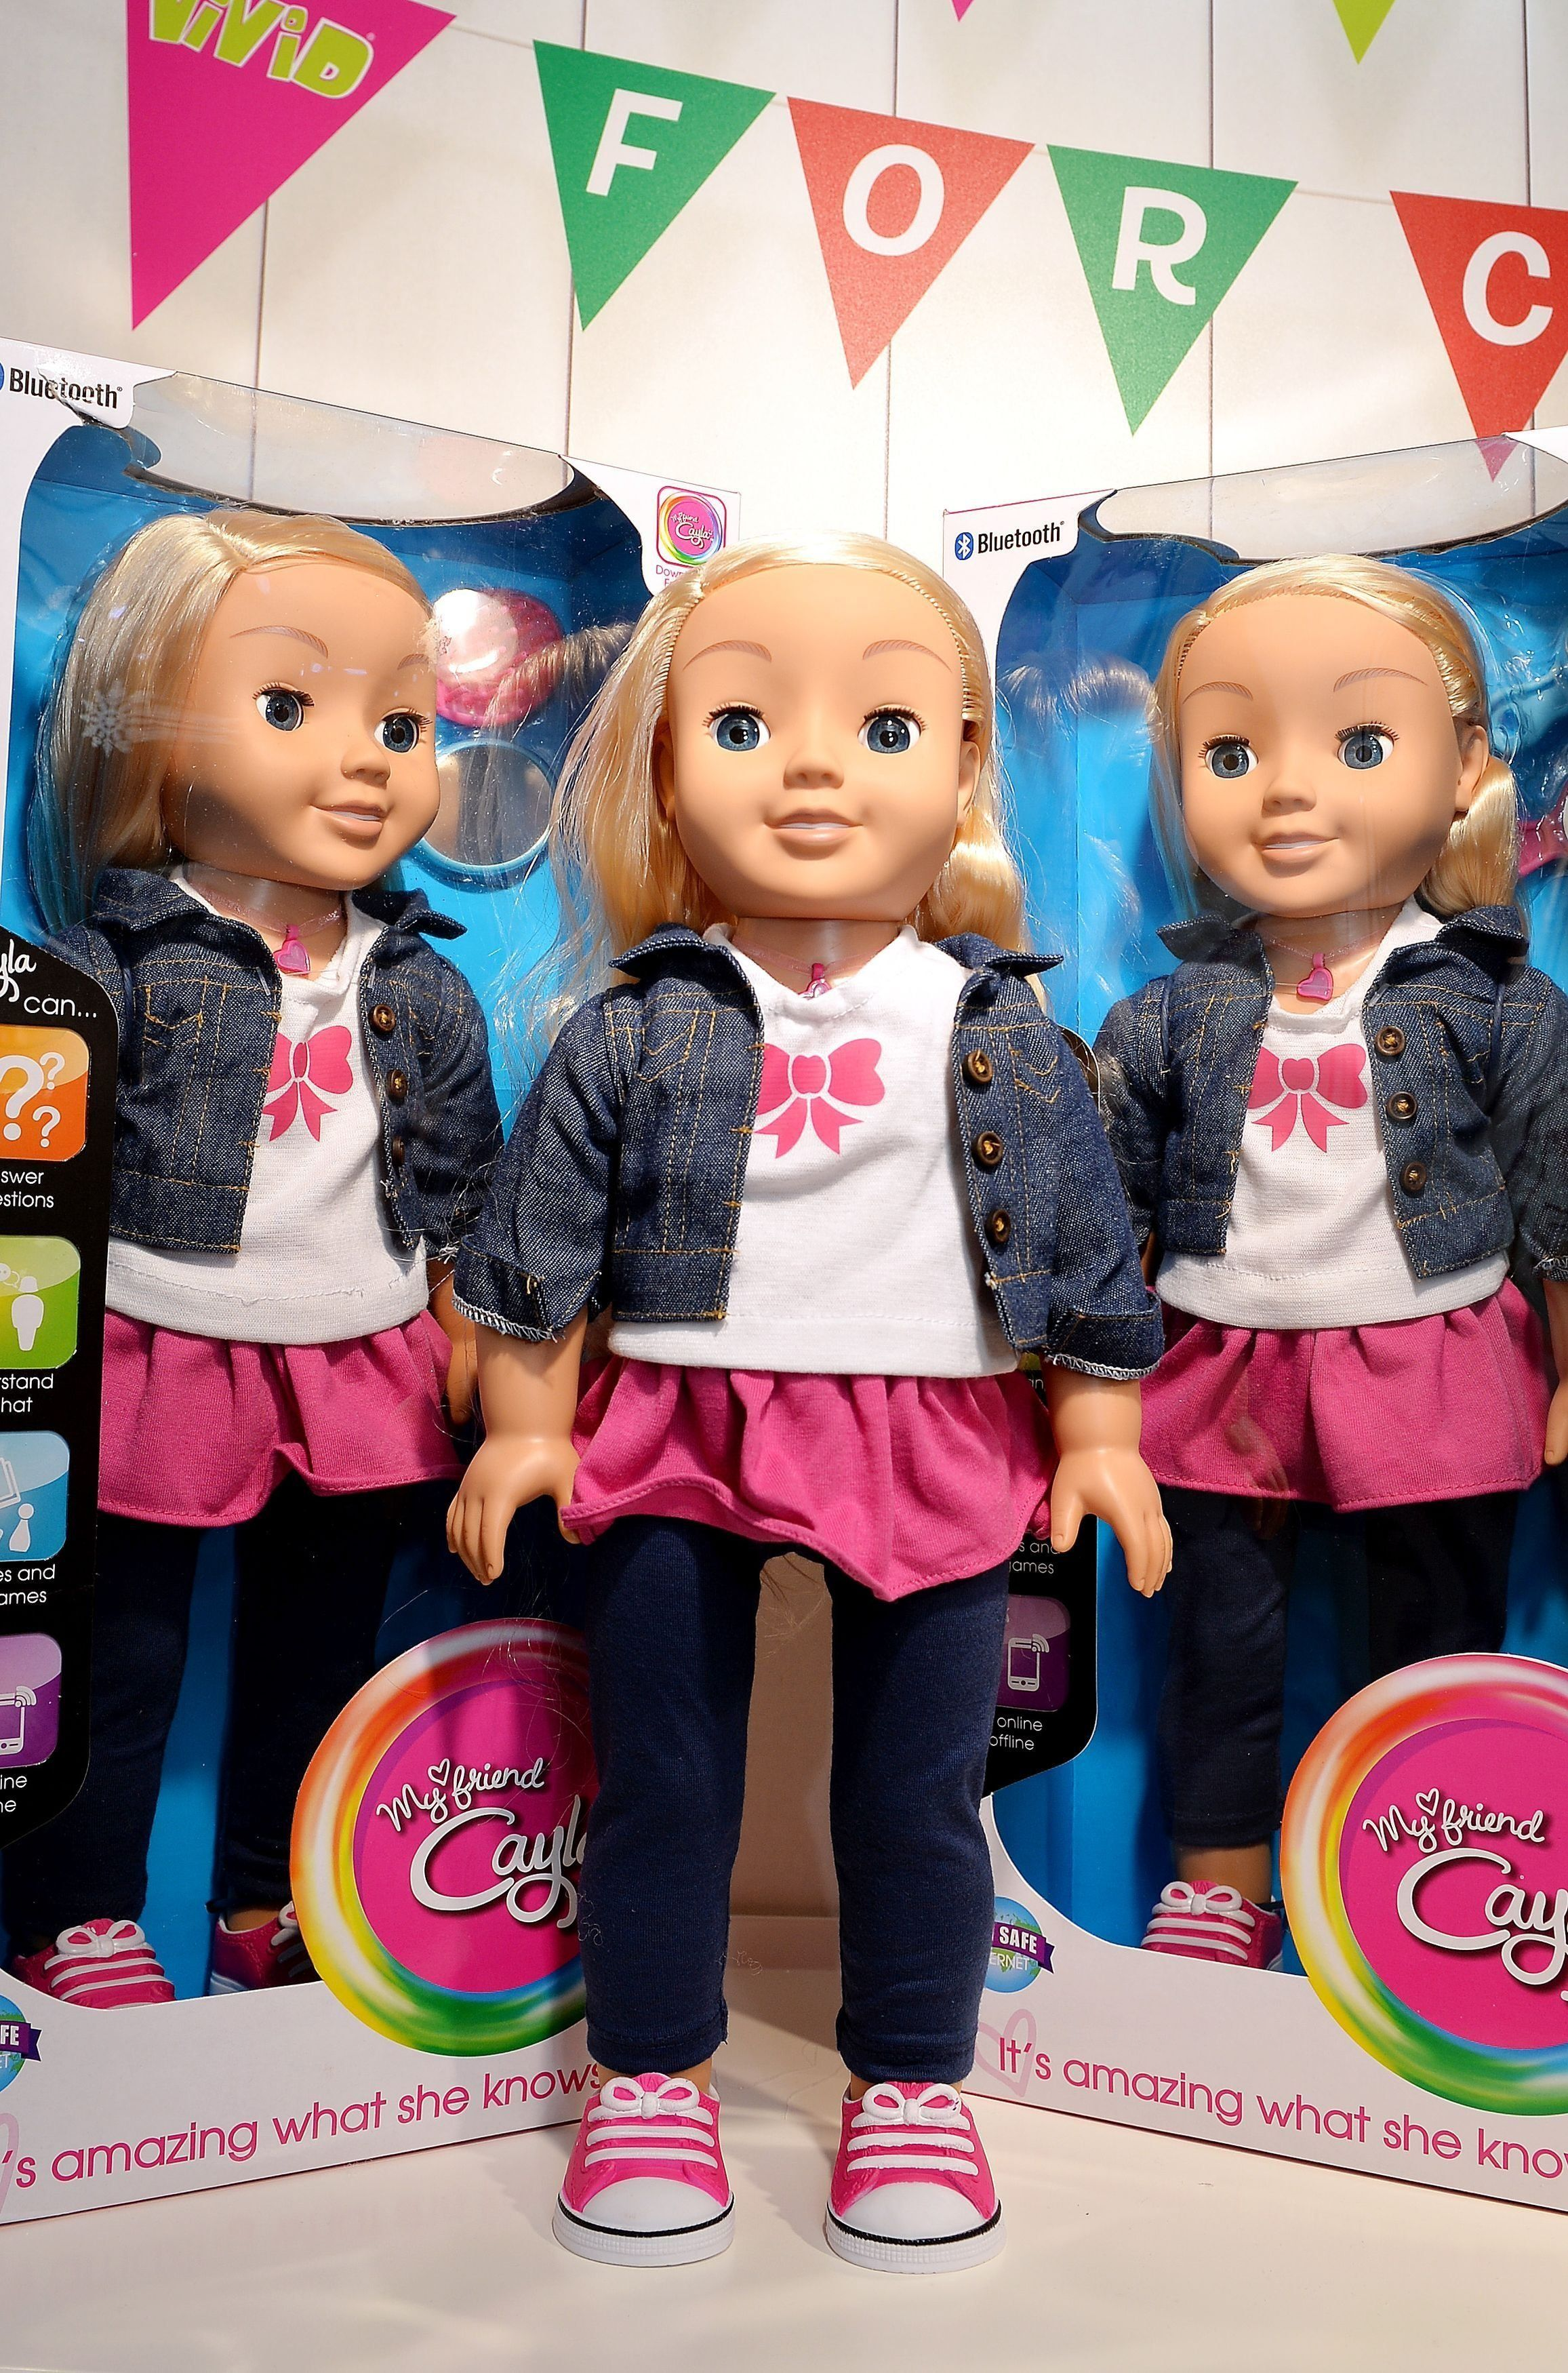 My Friend Cayla: German Parents Told To 'Destroy' Doll But UK Toy Brand Urges People Not To